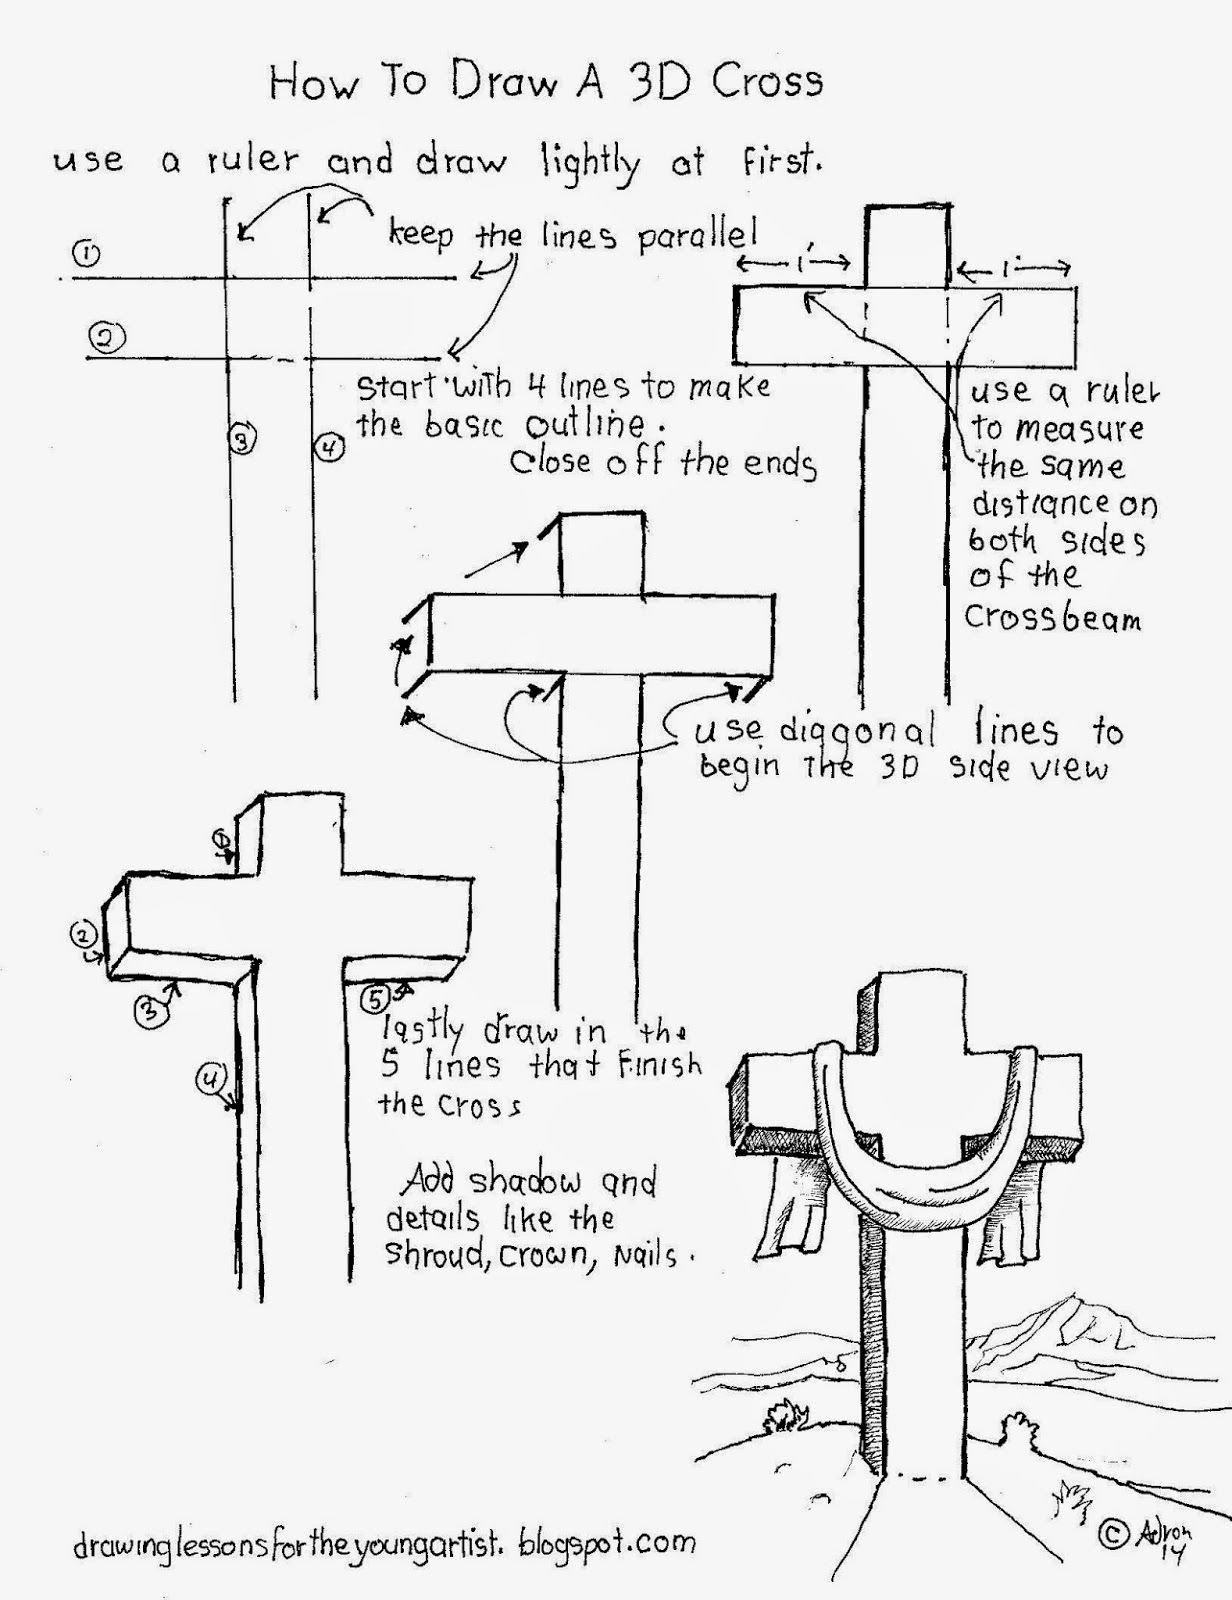 How To Draw A 3d Cross Christian Worksheet